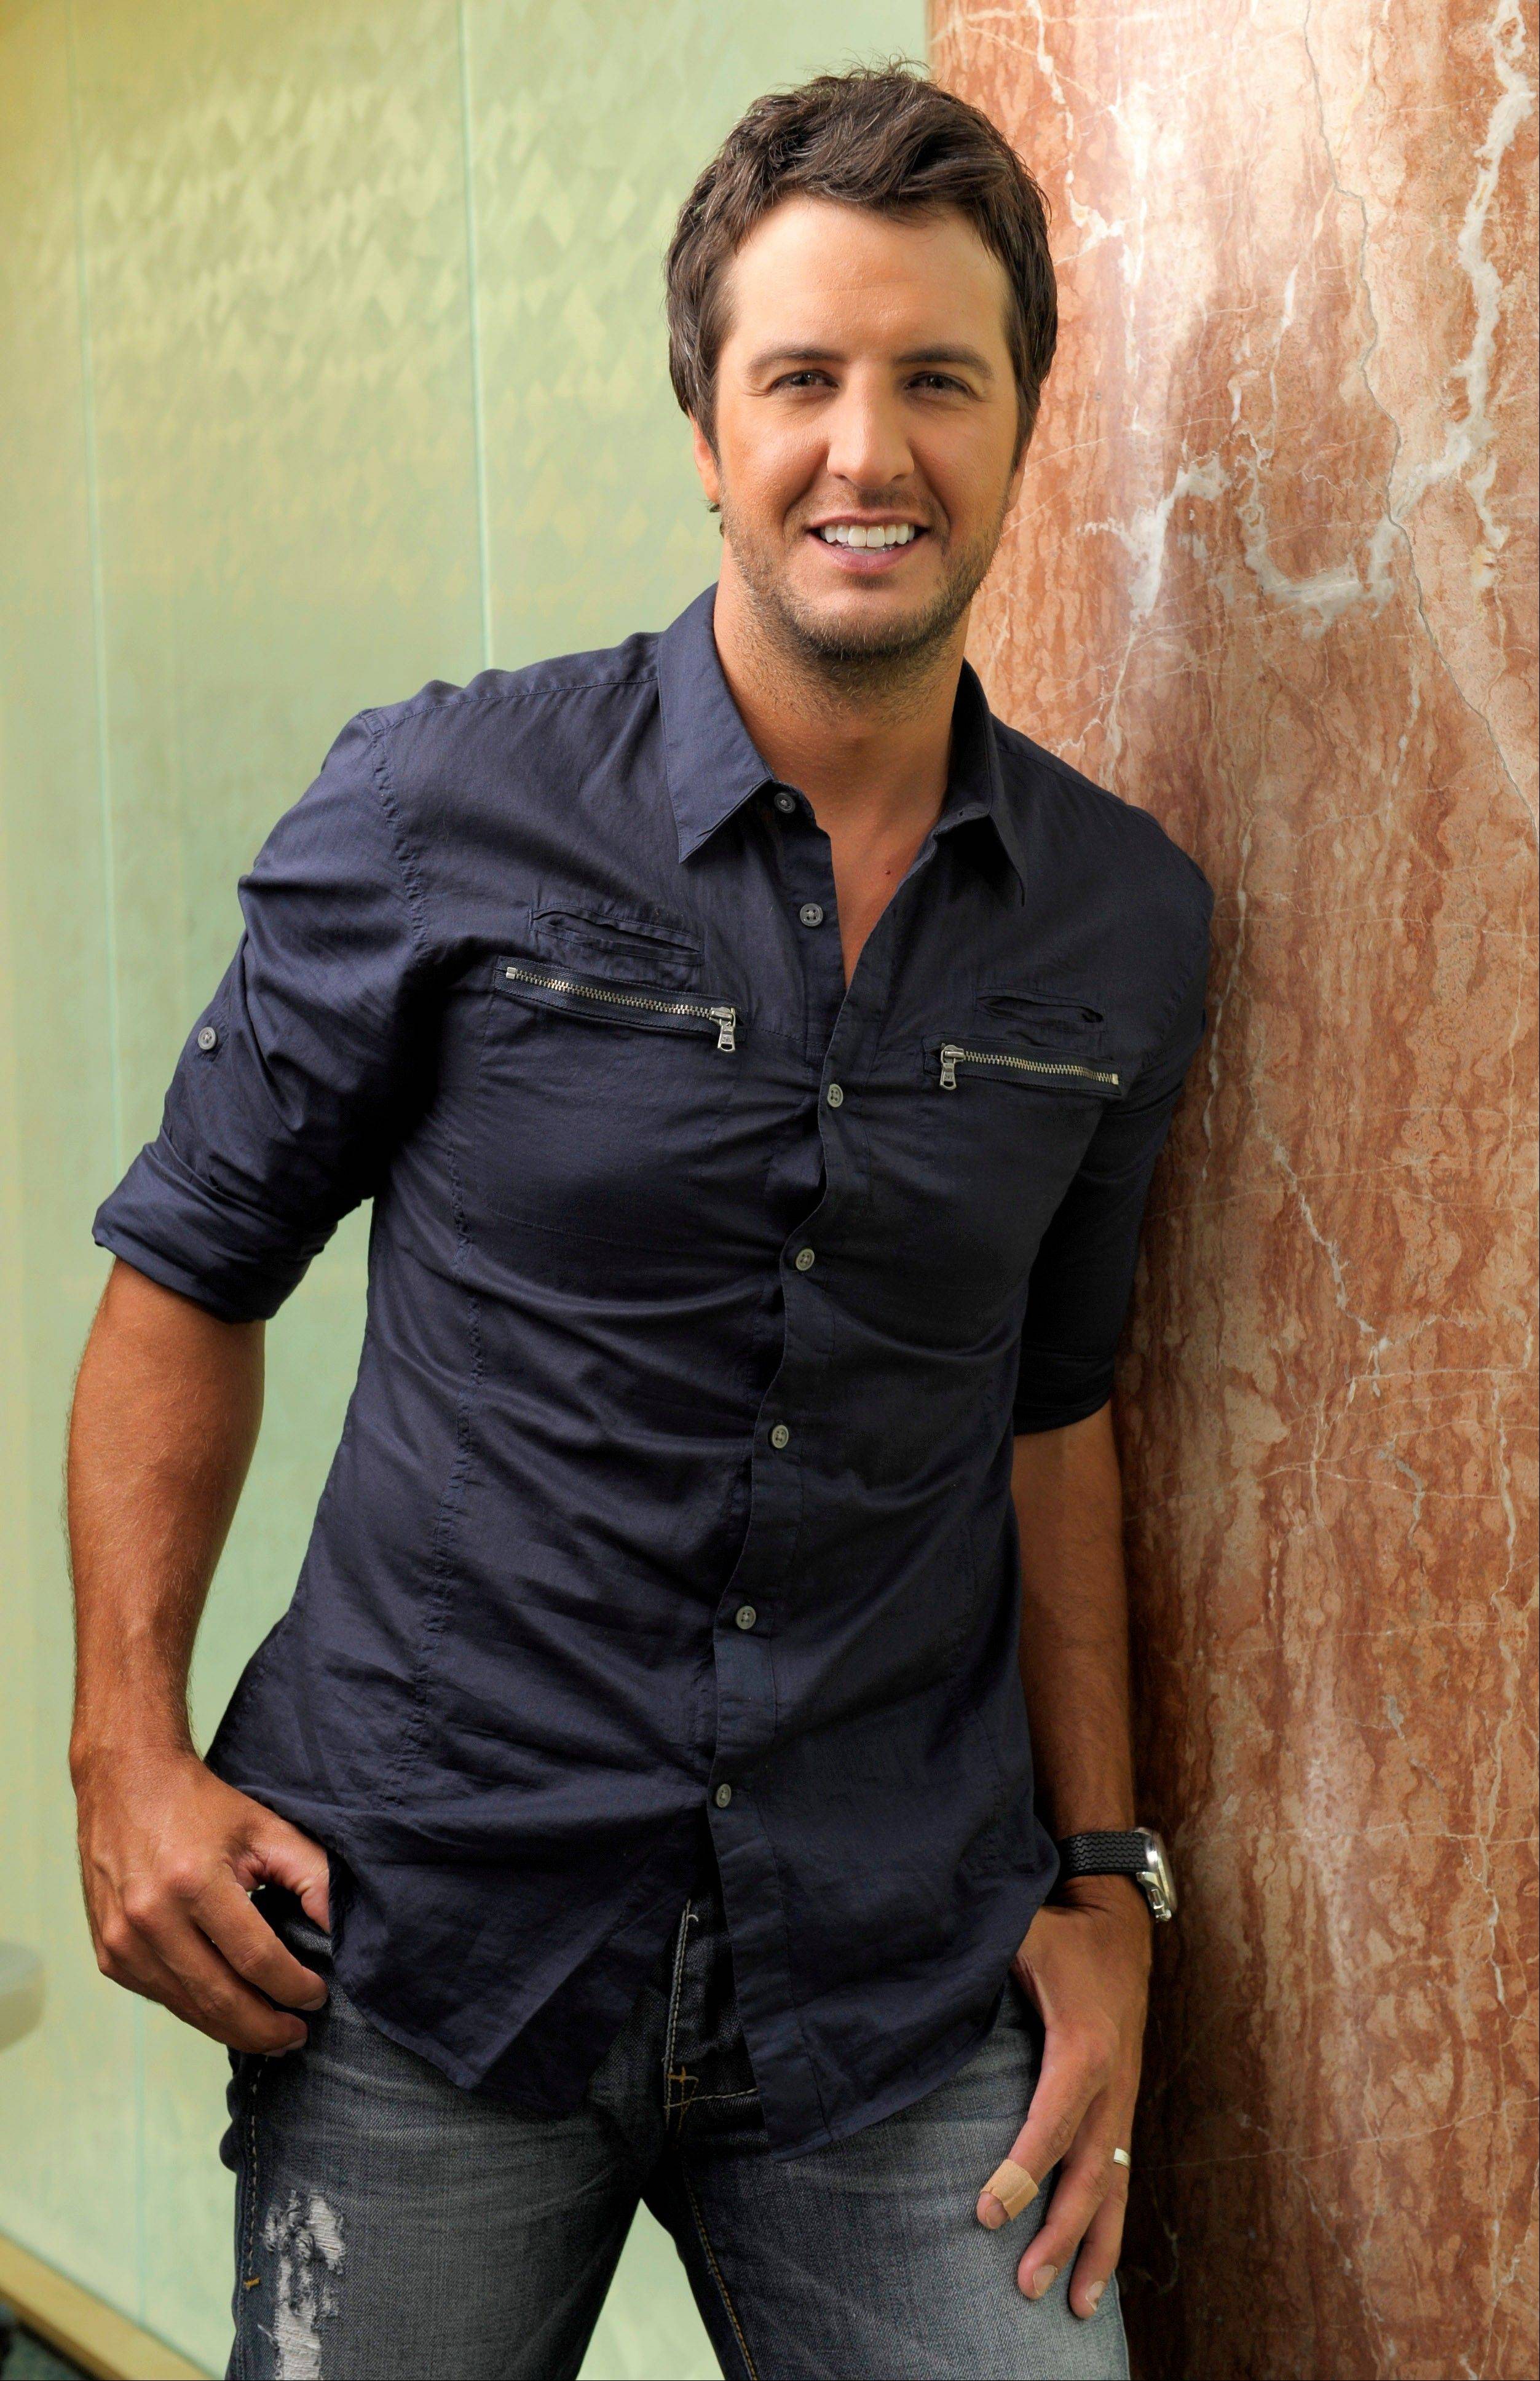 Country music artist Luke Bryan and The Band Perry�s Kimberly Perry are co-hosts for the three-hour TV special �CMA Music Festival: Country�s Night to Rock� on ABC.